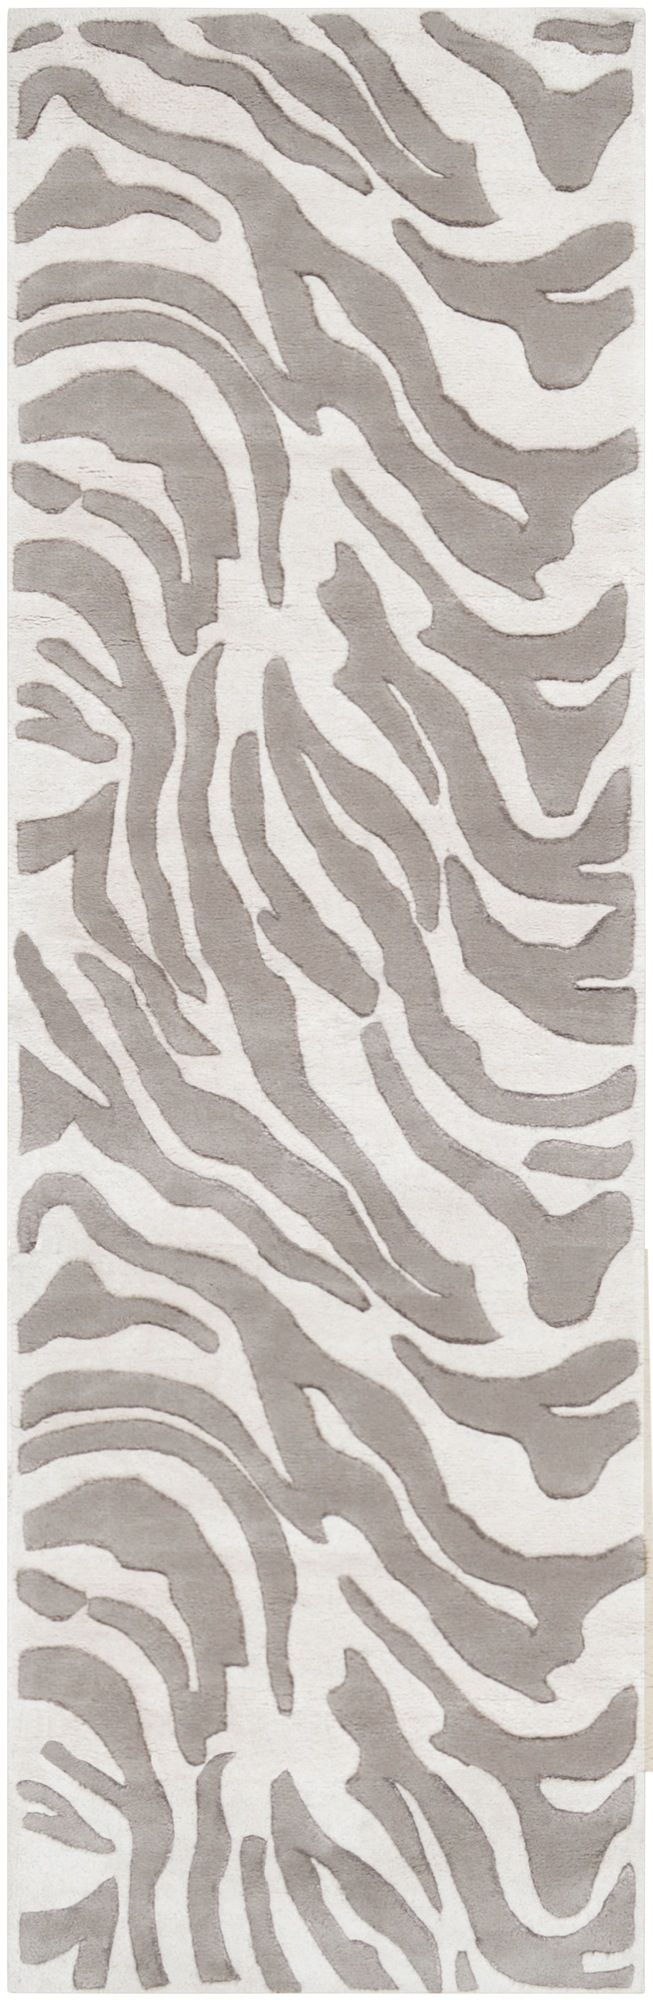 surya mosaic animal inspirations area rug collection